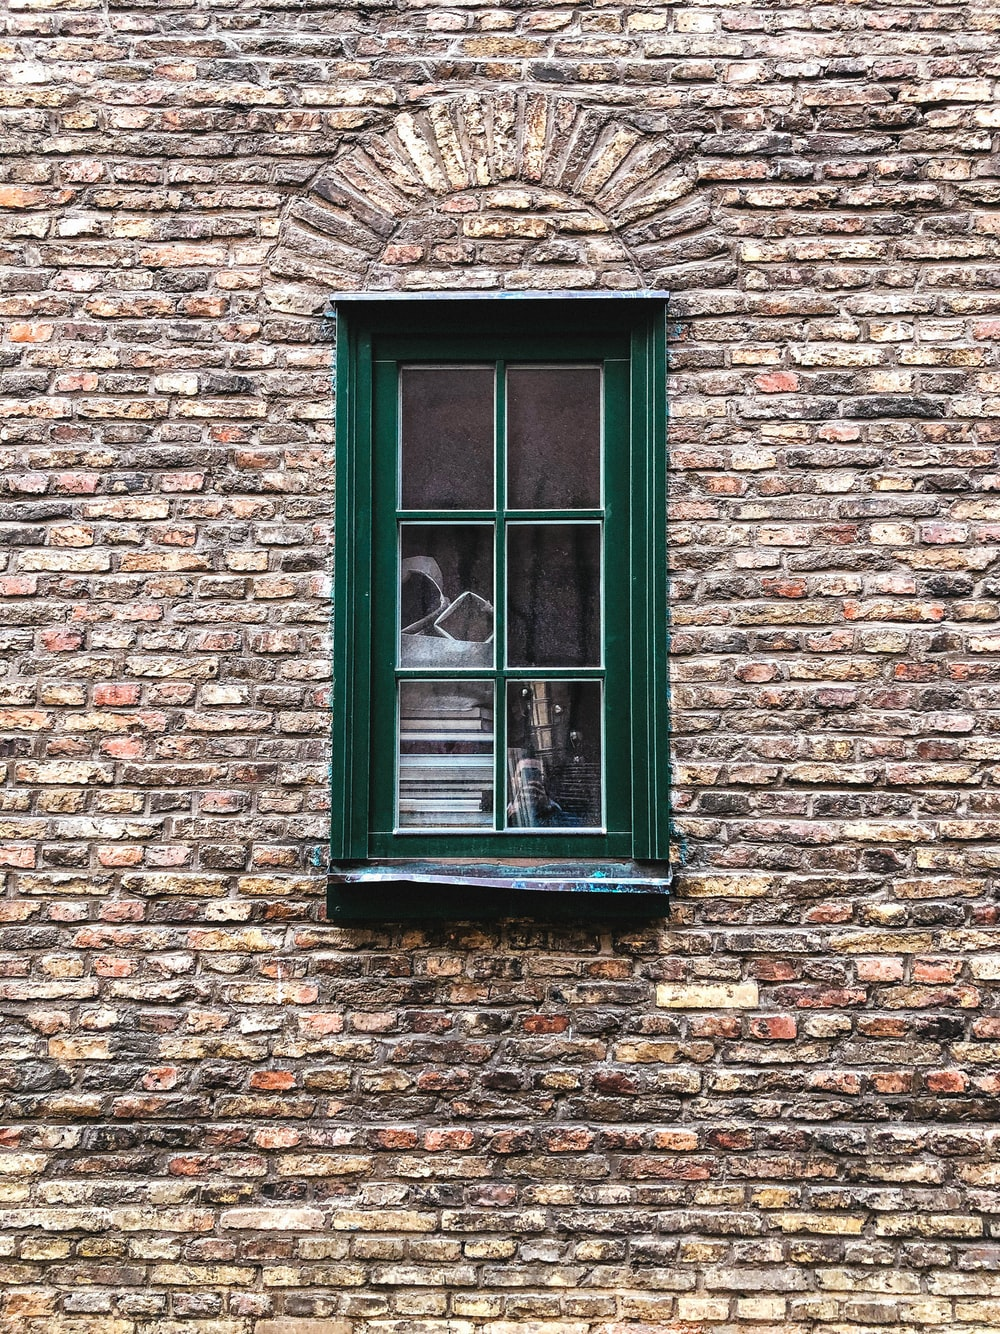 photo of green glass panel window